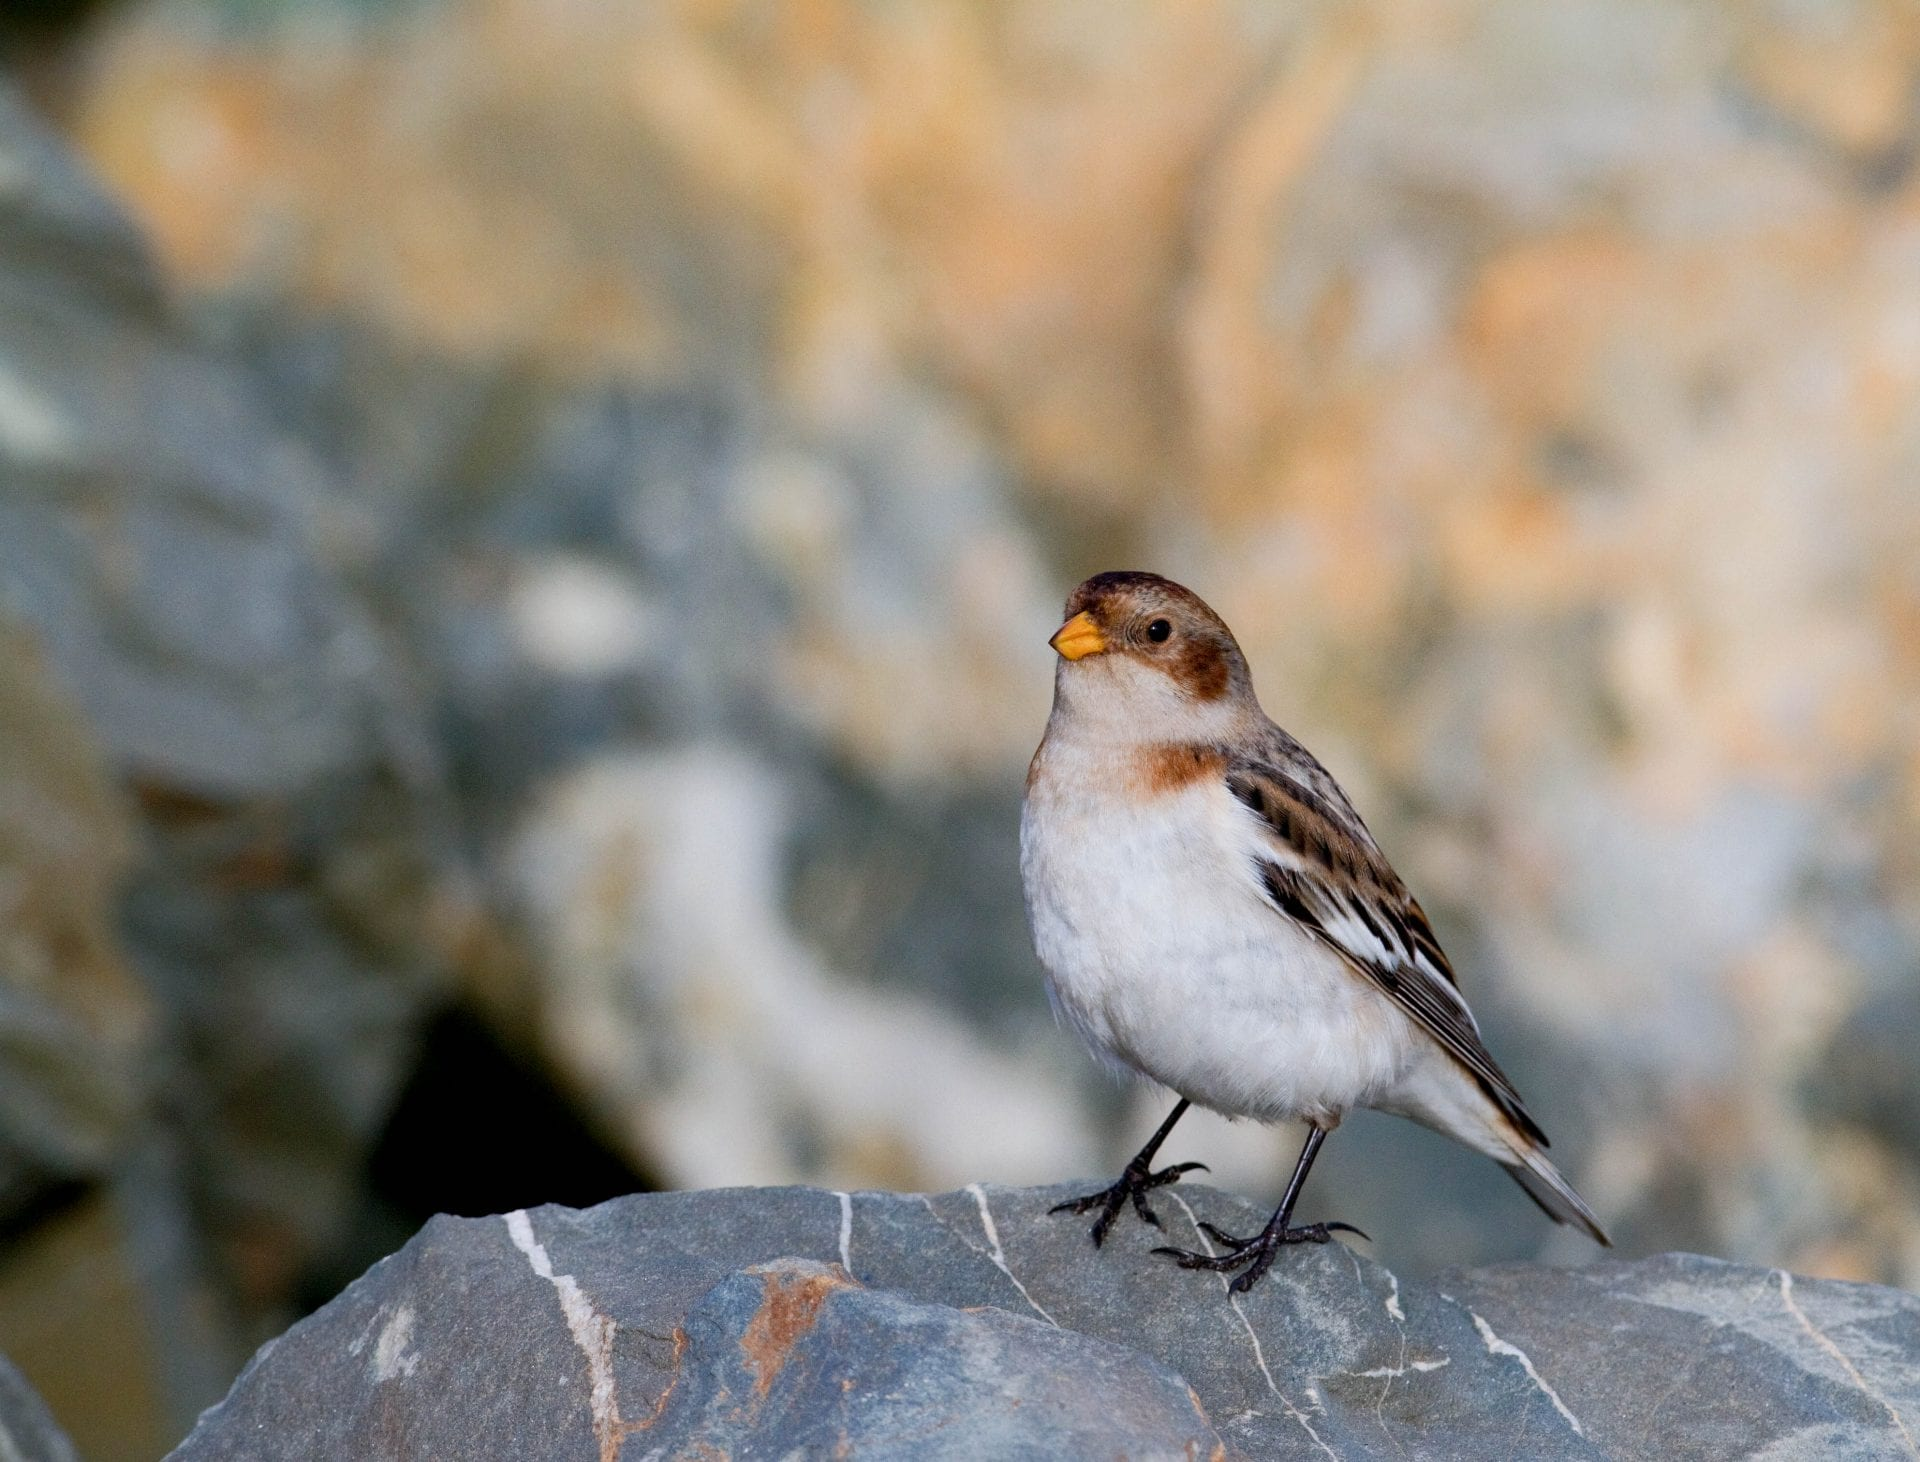 snow-bunting-standing-on-rock